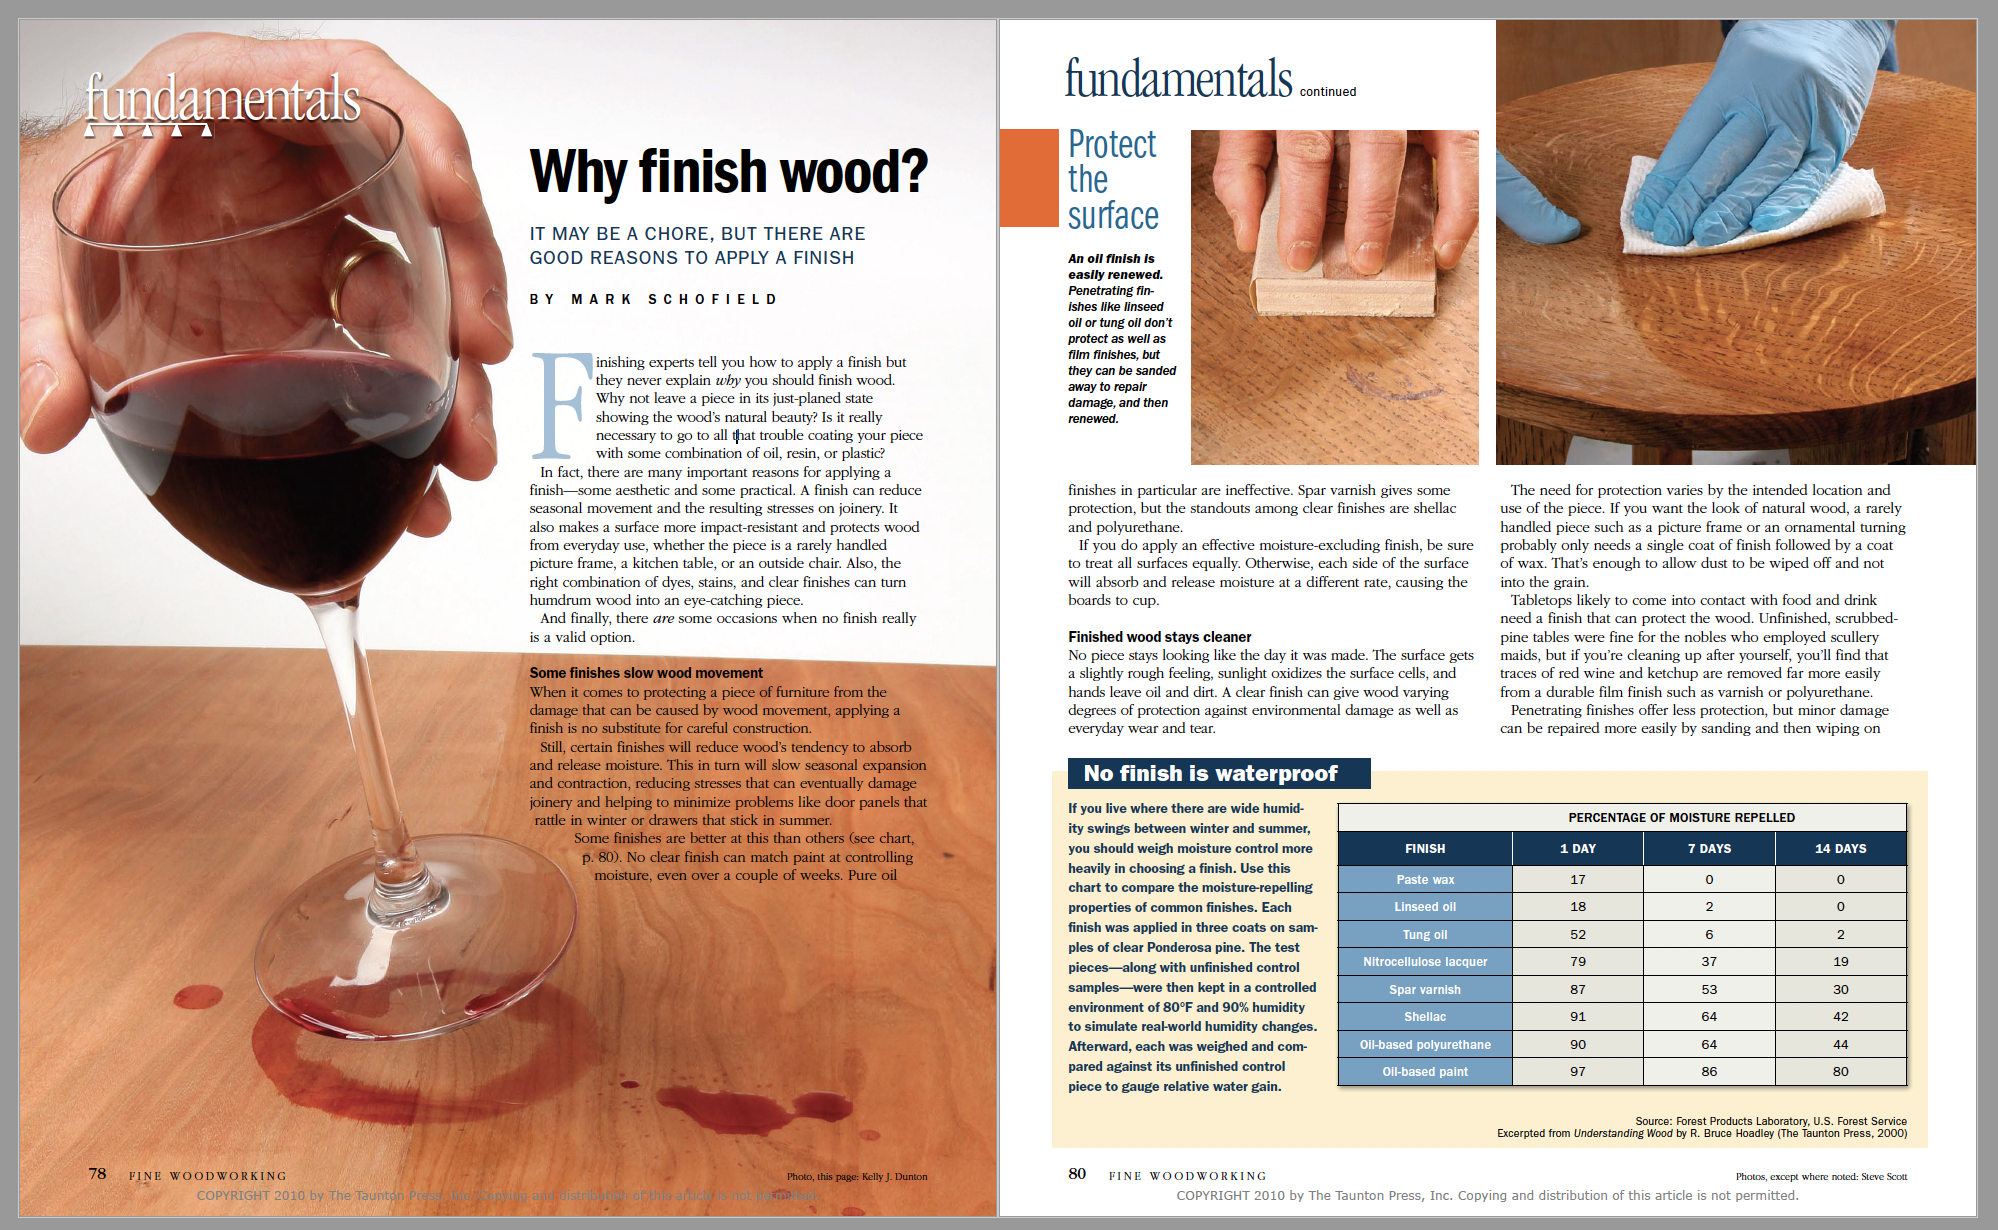 Why Finish Wood Spread Image